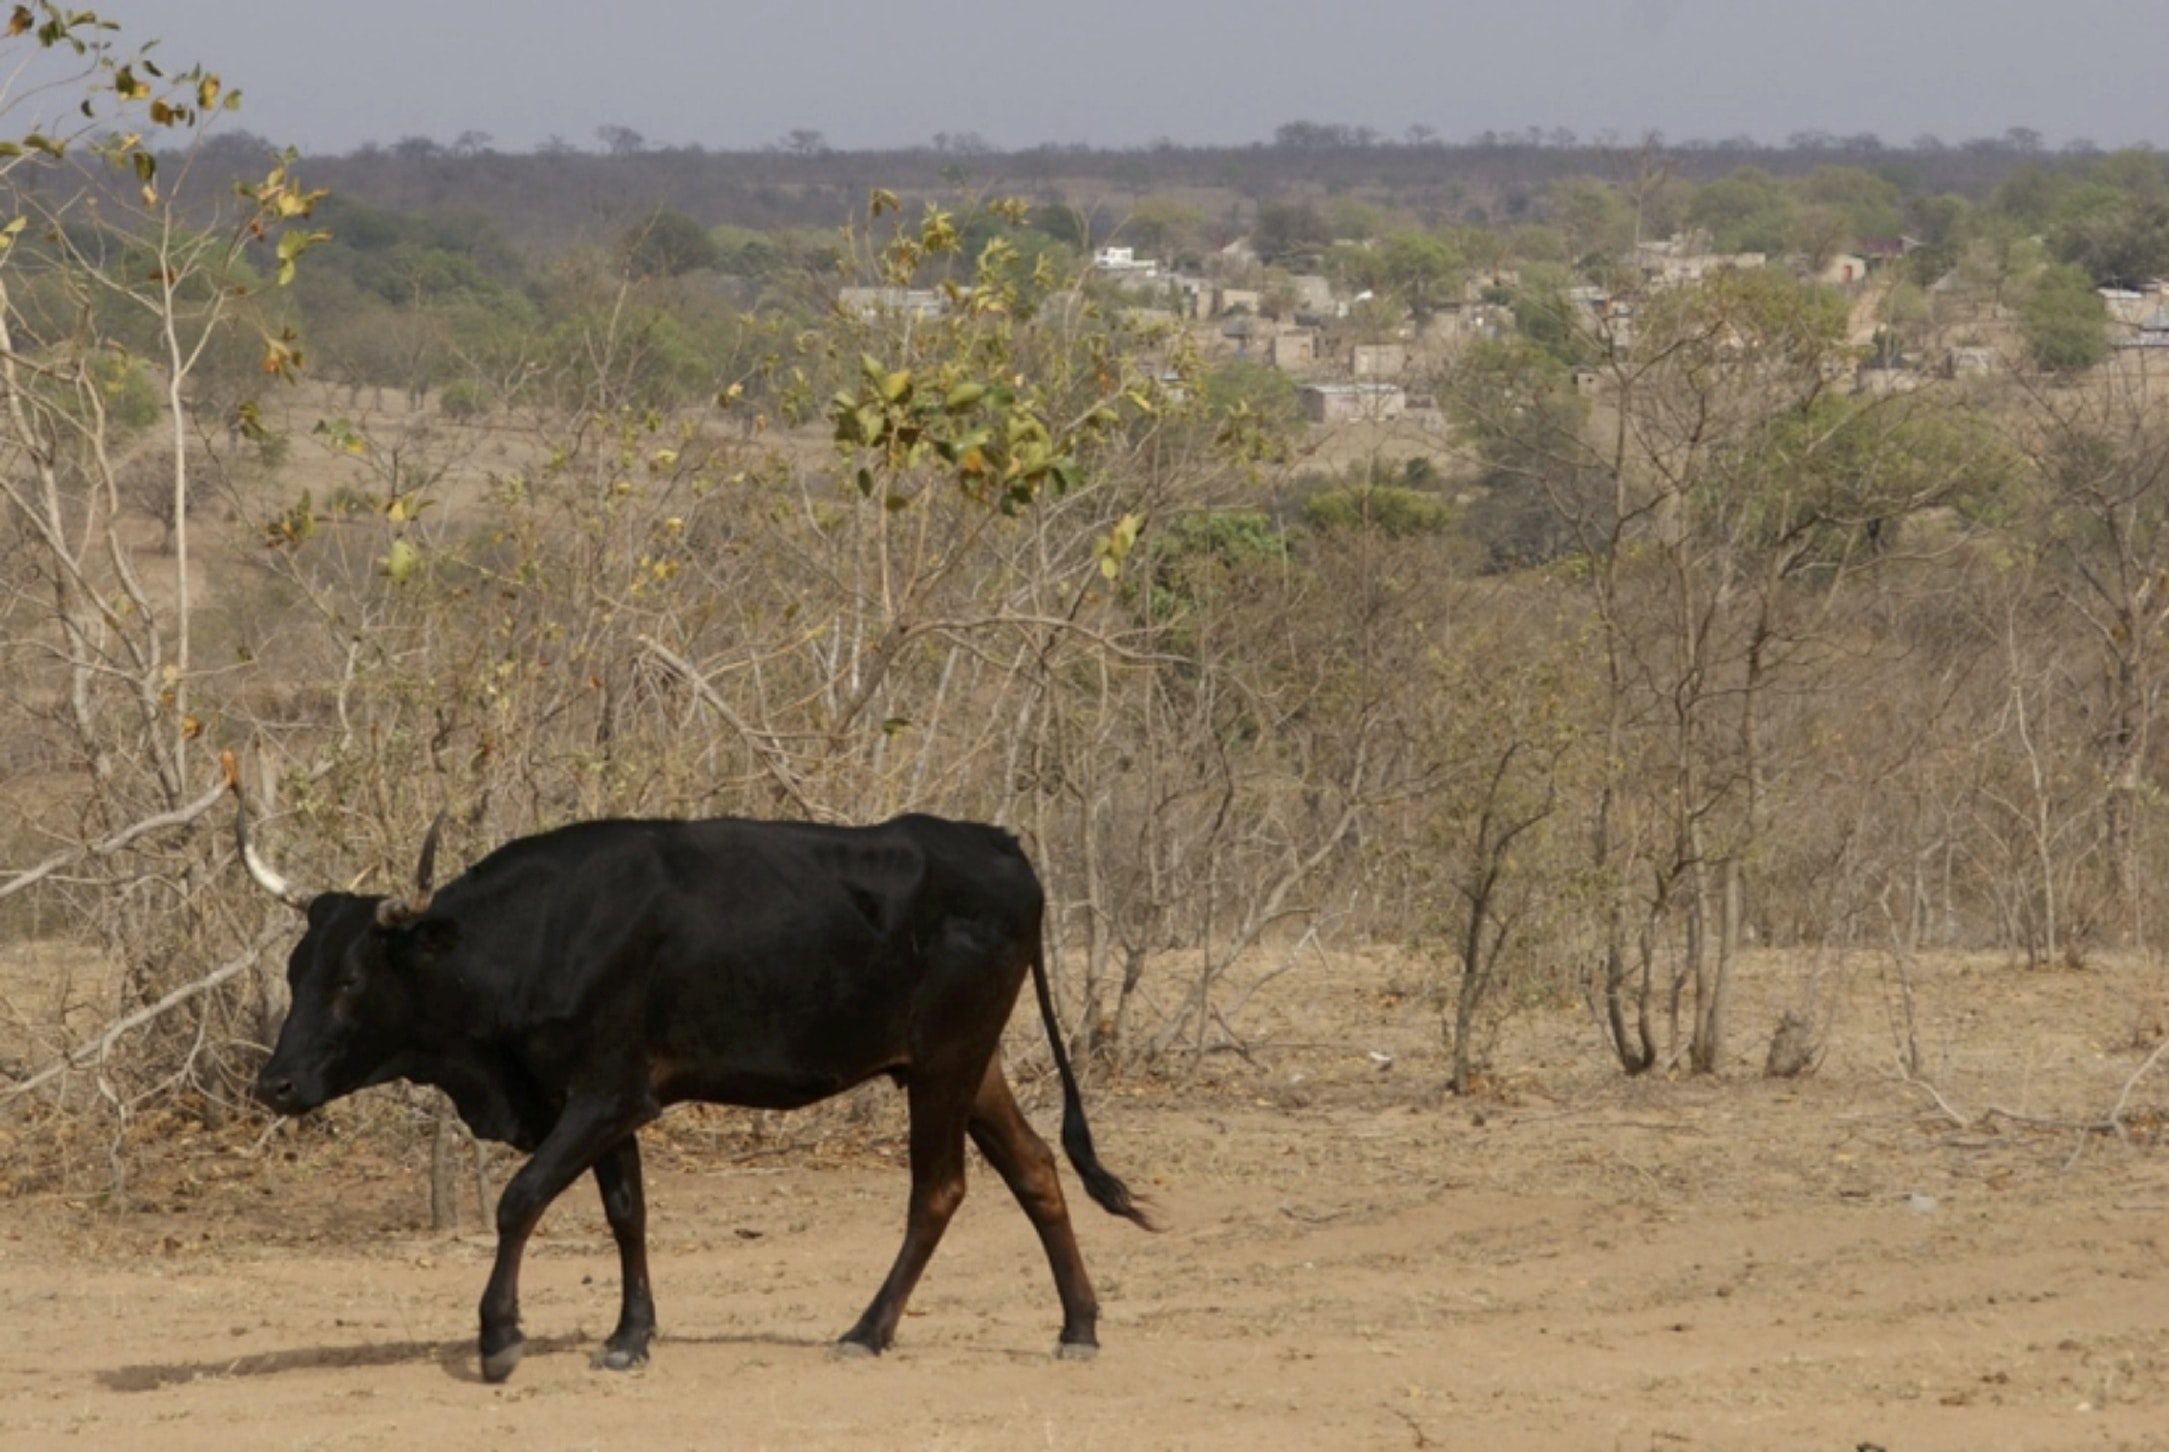 Drought-affected cattle farming in Mpumalanga province, South Africa.